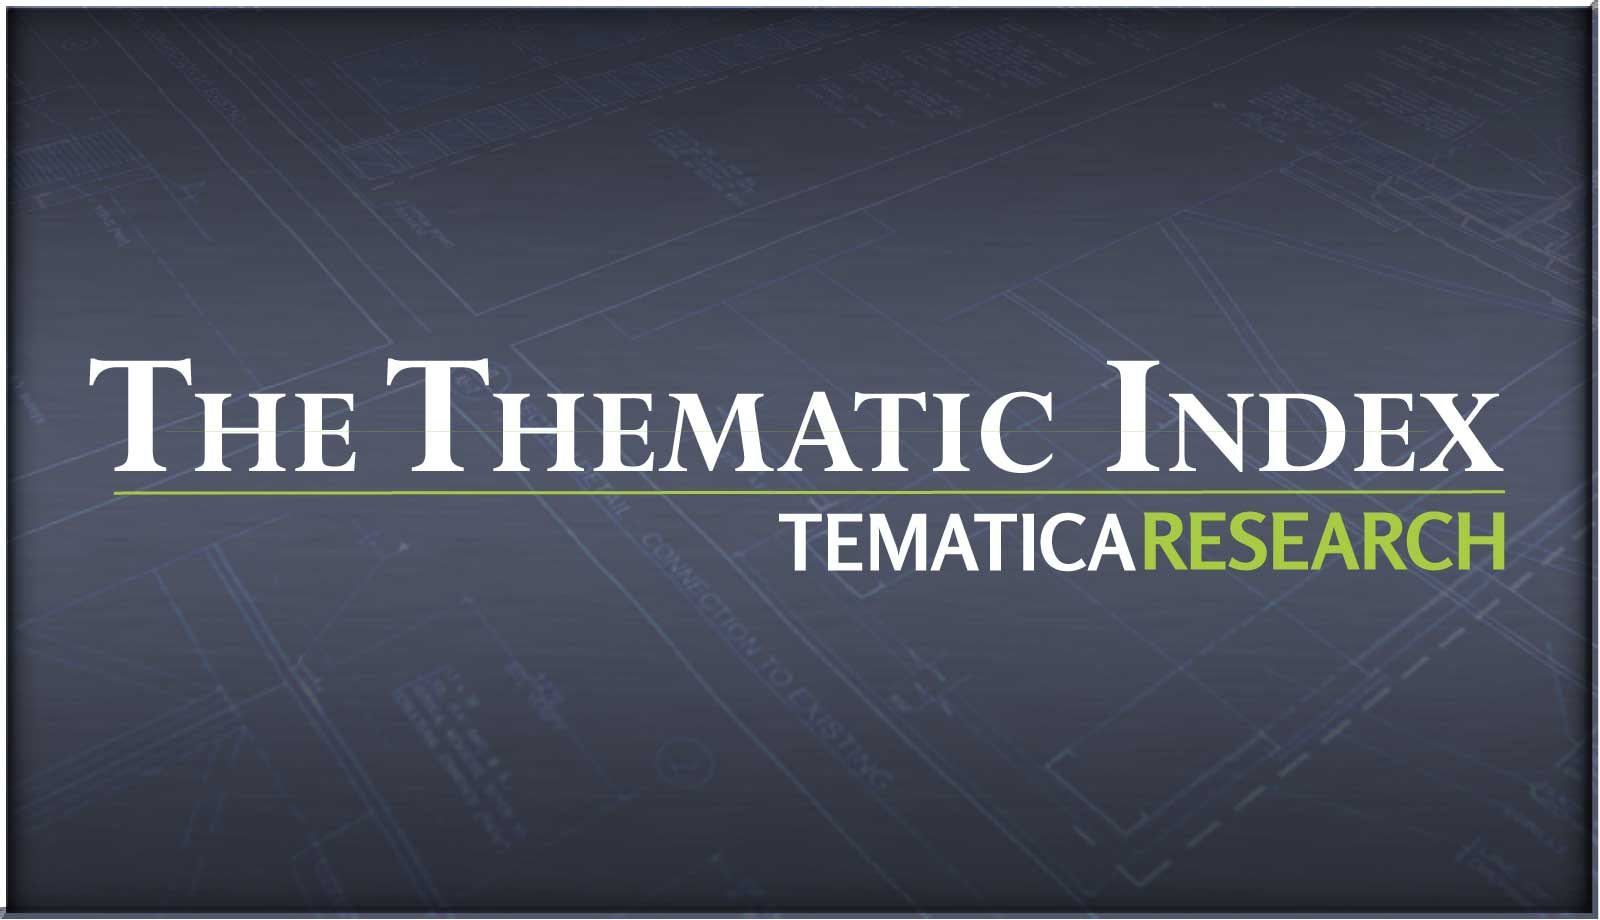 Introducing the new Thematic Index by Tematica Research